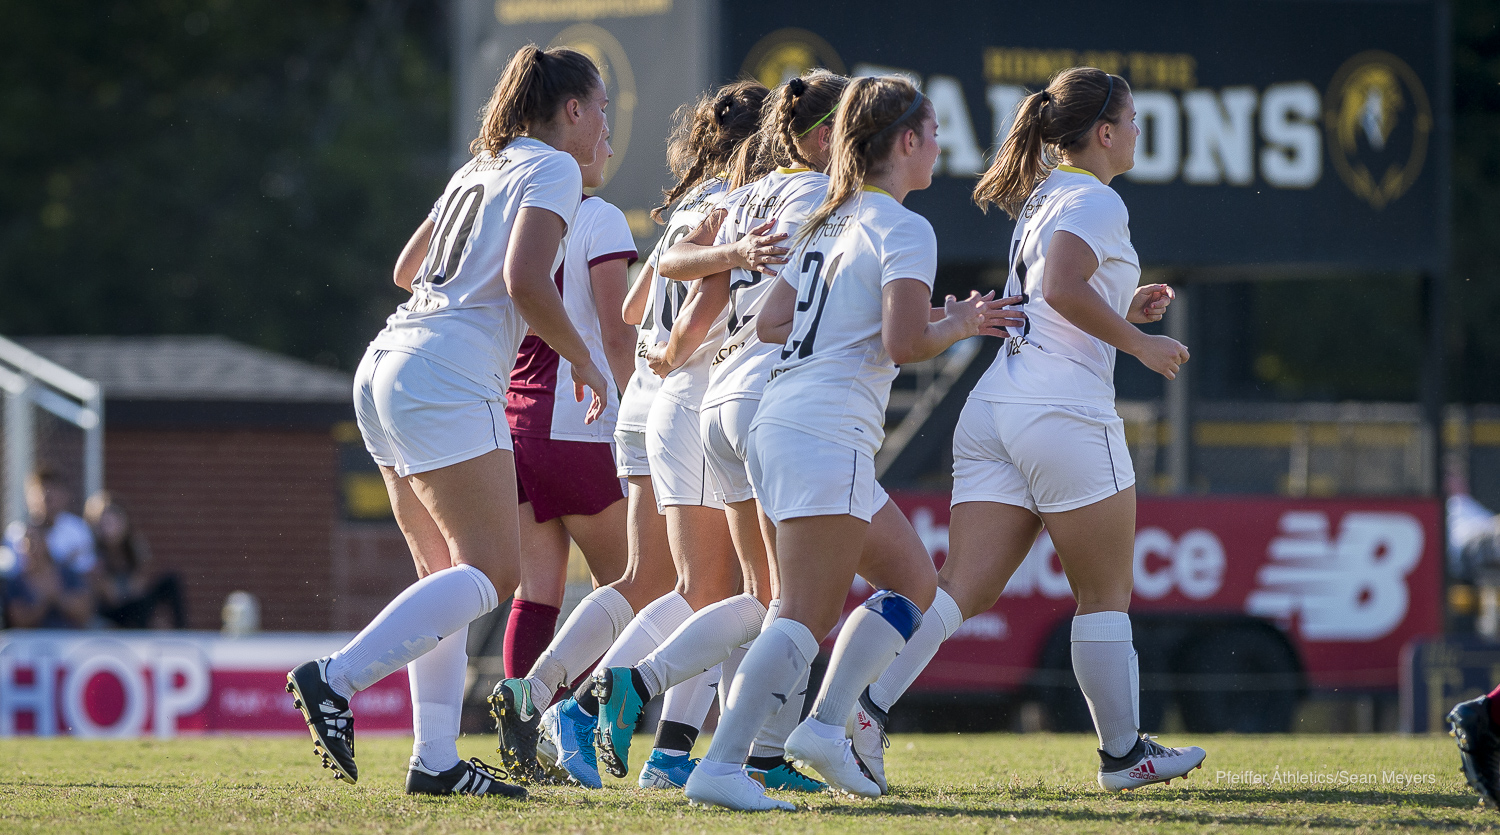 2019 WSOC vs. Roanoke